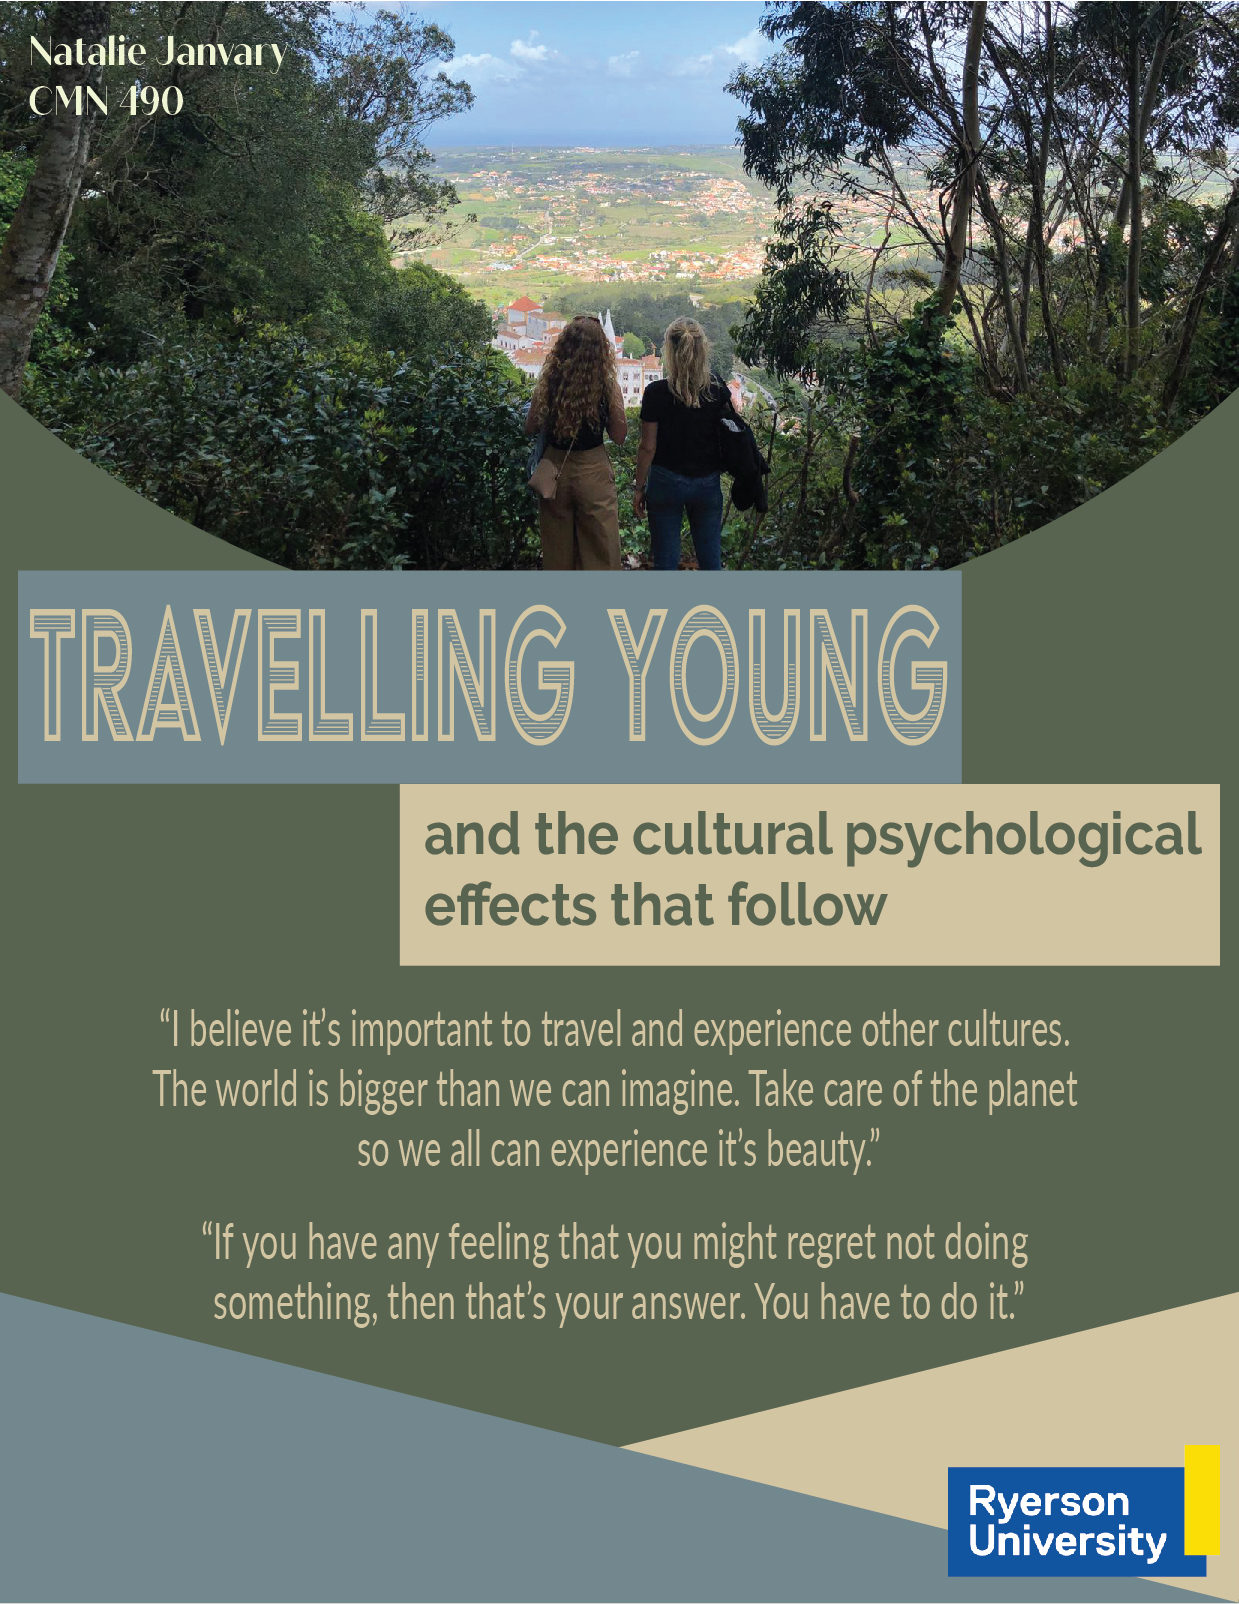 Natalie Janvary Research Poster